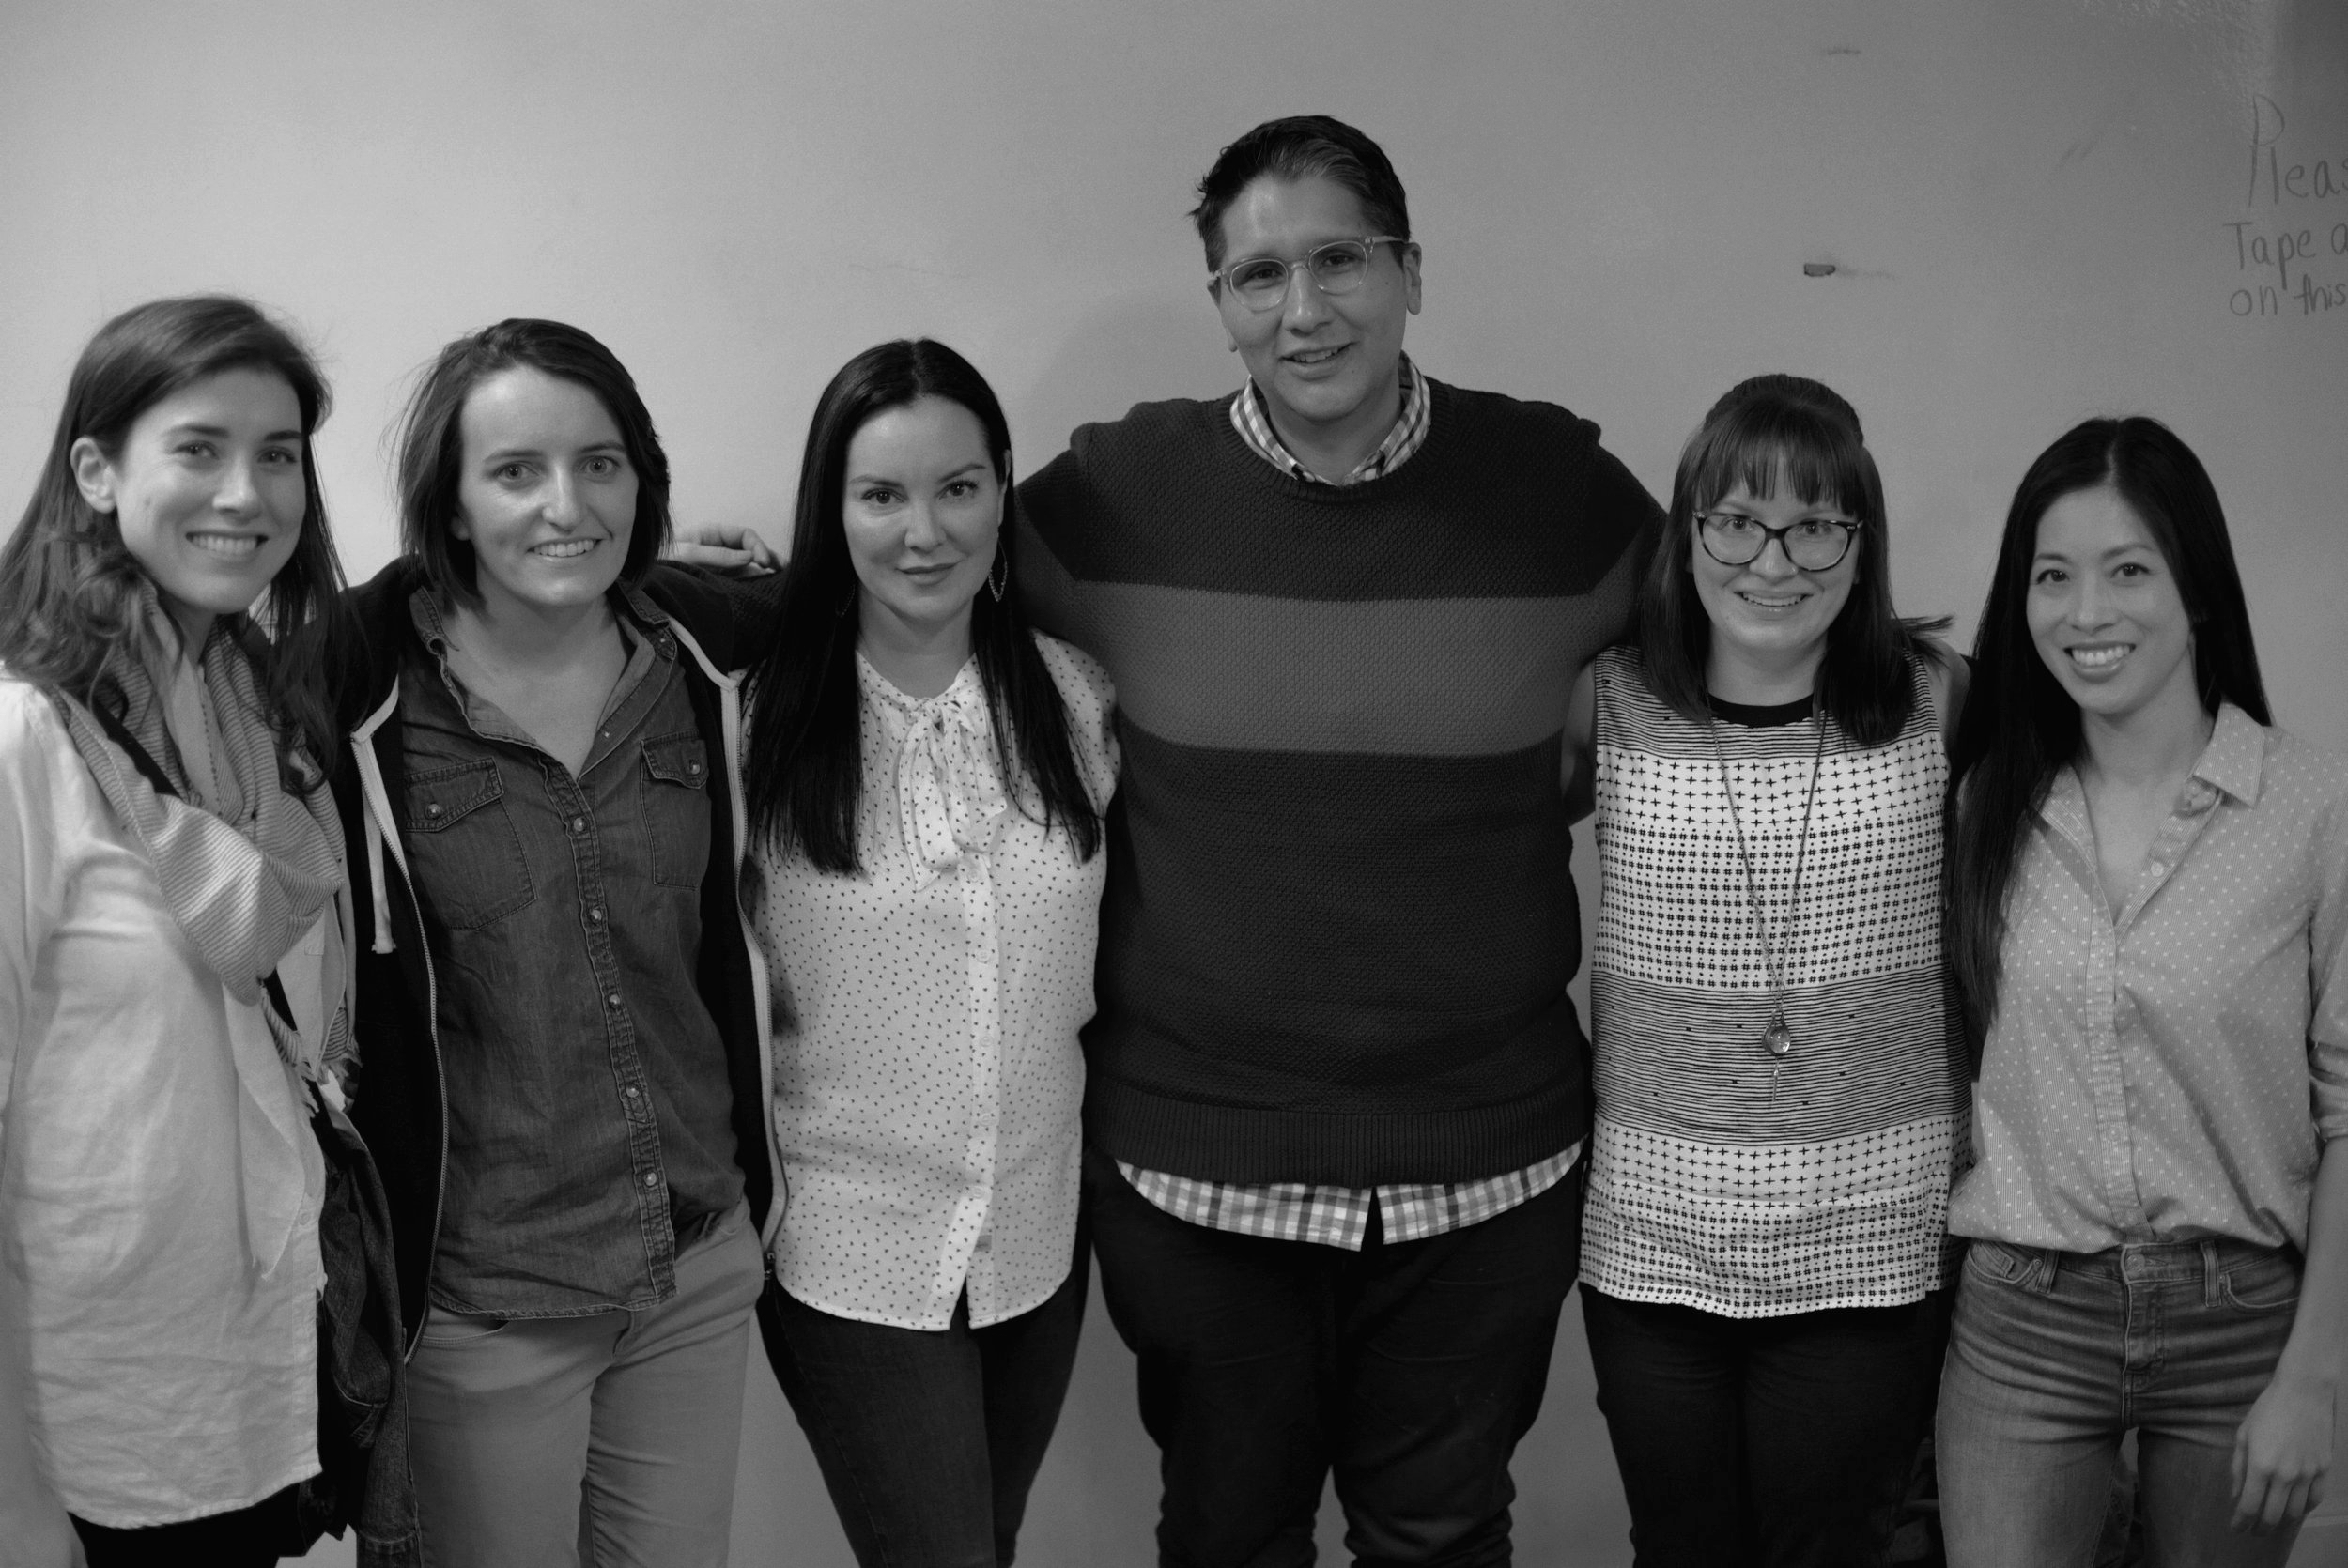 Eileen Jones ,  Nora Nolan , Script Anatomy Founder  Tawnya Bhattacharya , Miguel Ian Reyes,  Lorelei Ignas  and Cindy Fang.